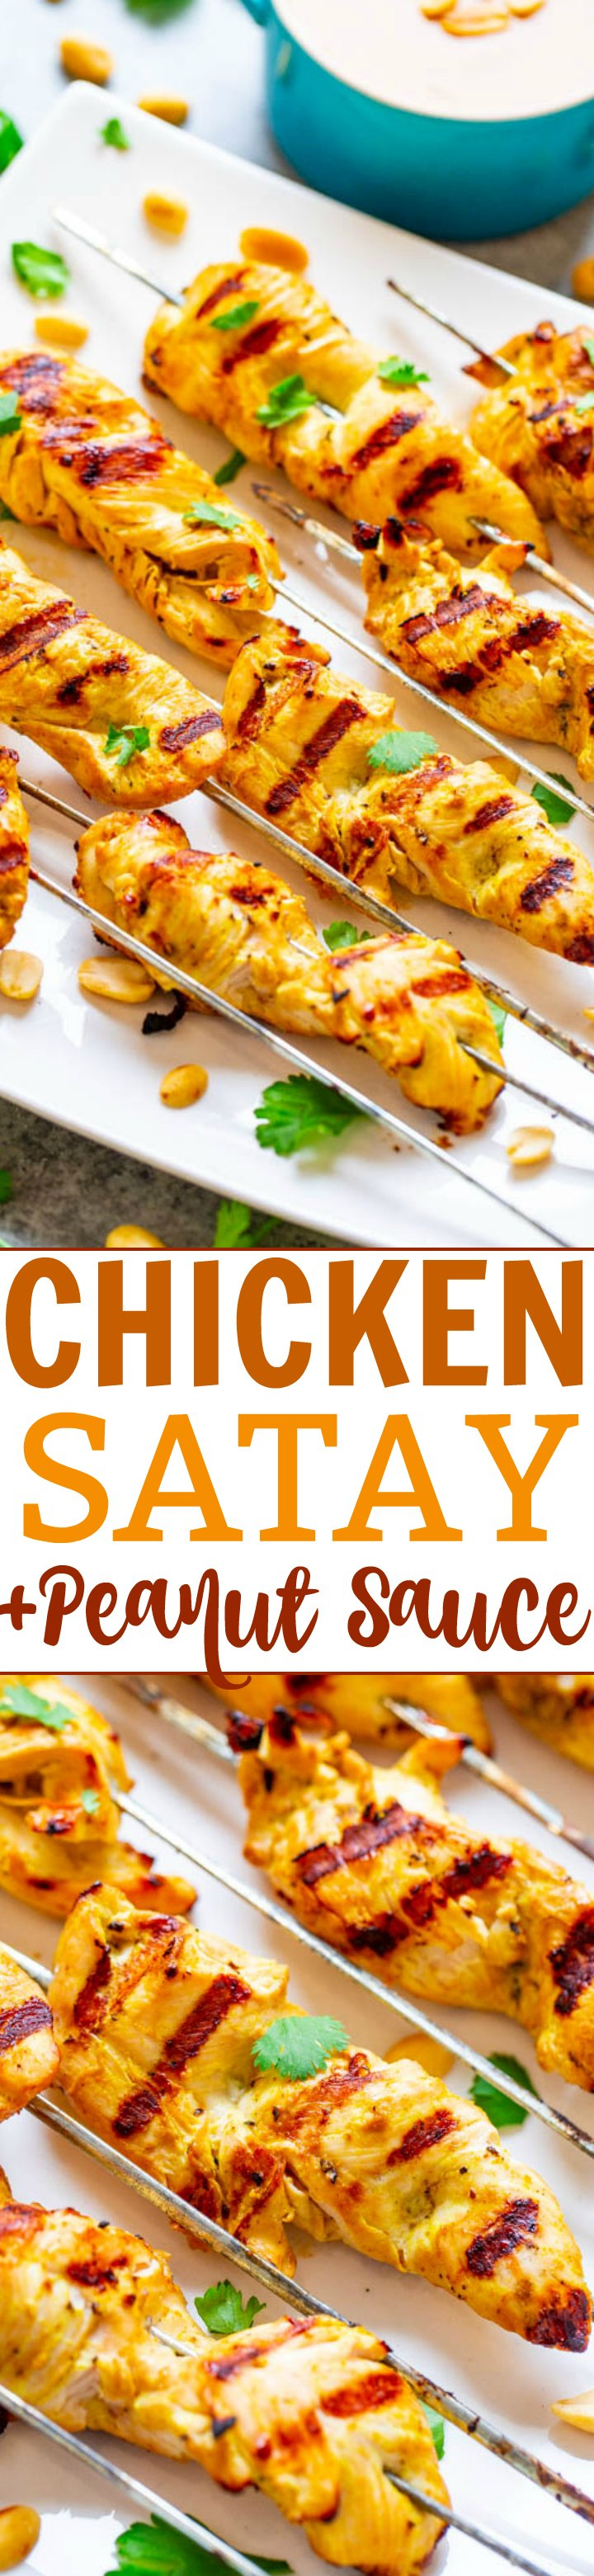 Easy Chicken Satay With Peanut Sauce - Look no further from this FAST and EASY recipe for authentic-tasting Thai chicken satay!! The chicken is so tender and juicy and there's plenty of homemade PEANUT SAUCE to dip it into!!